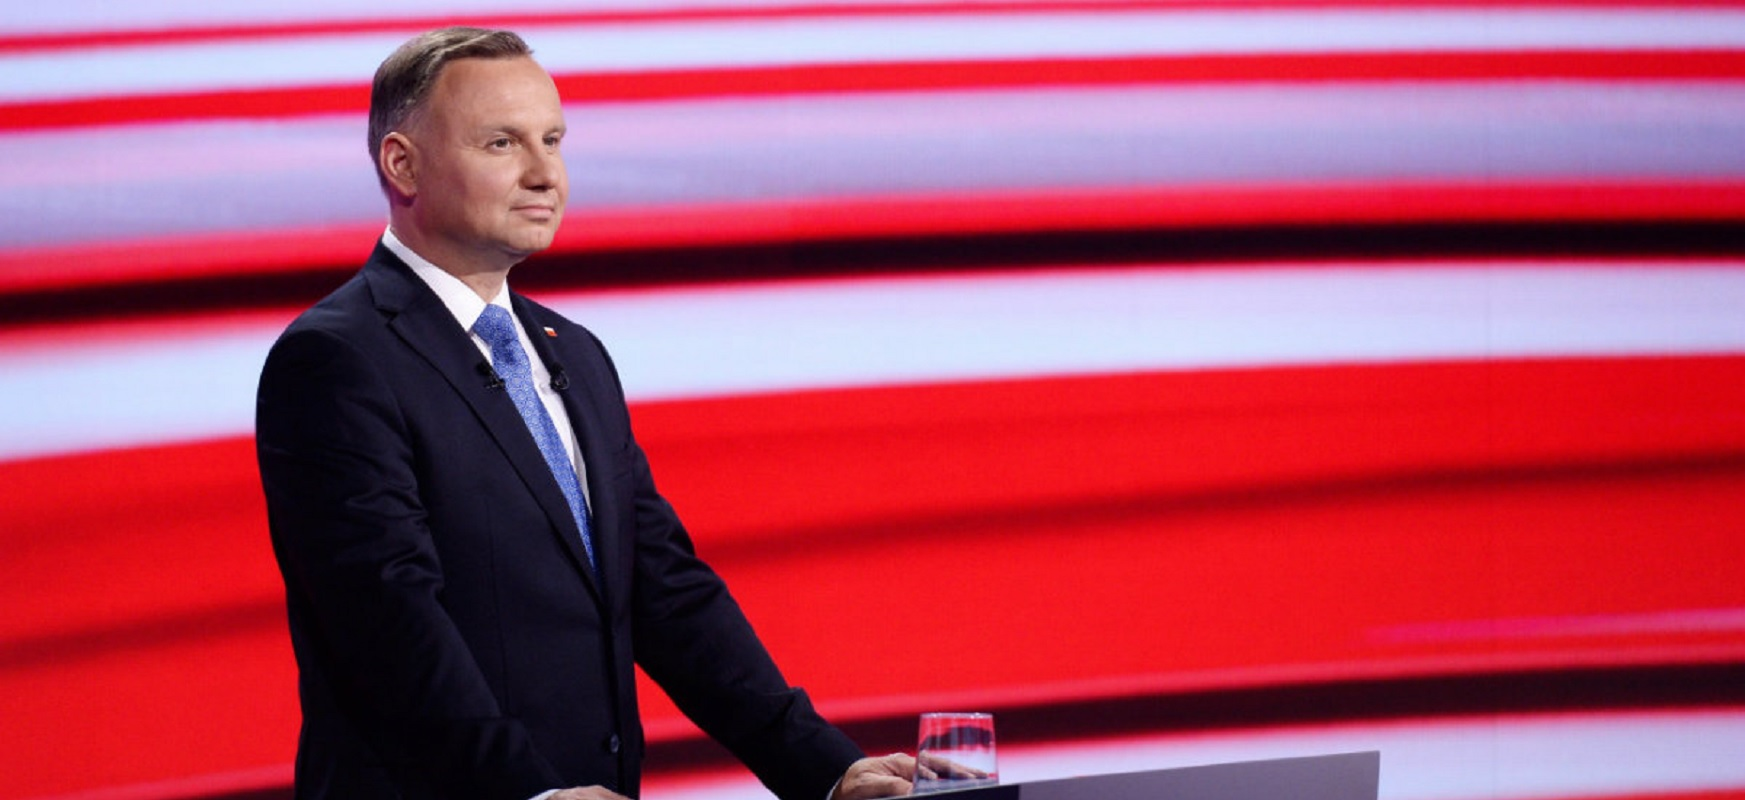 Andrzej Duda sounded like an anti-vaccineist yesterday on TVP. He has given up a bit today